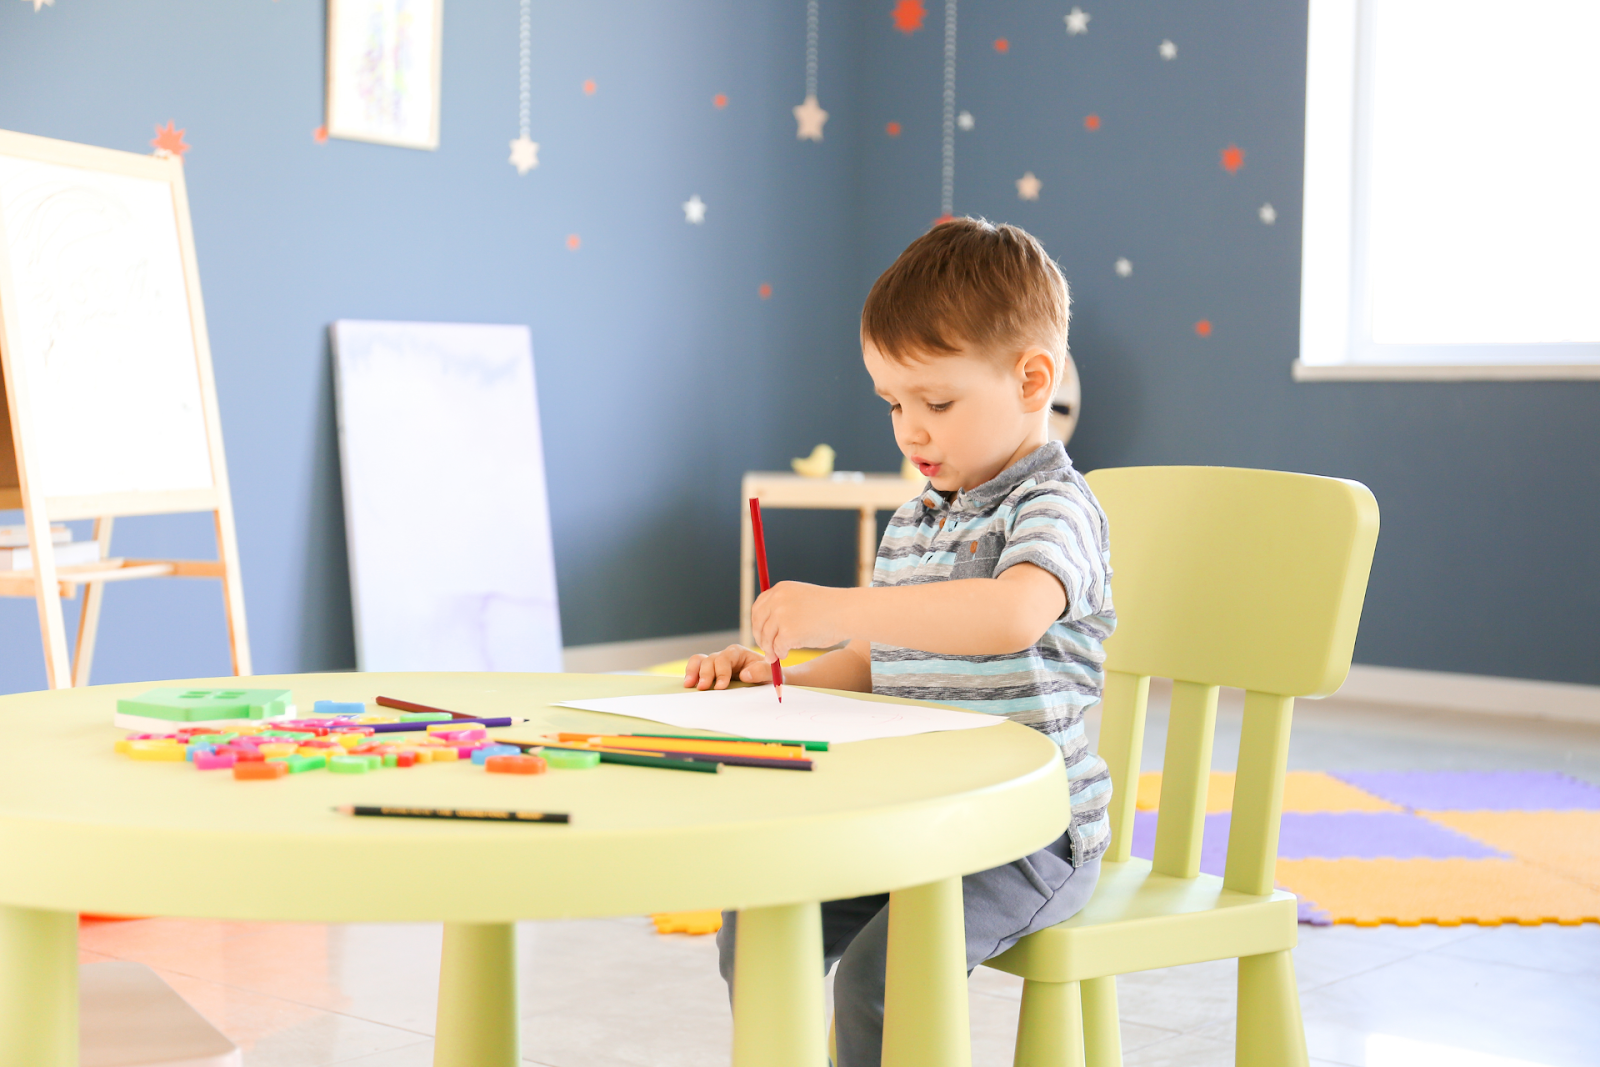 little boy with autism playing in a room